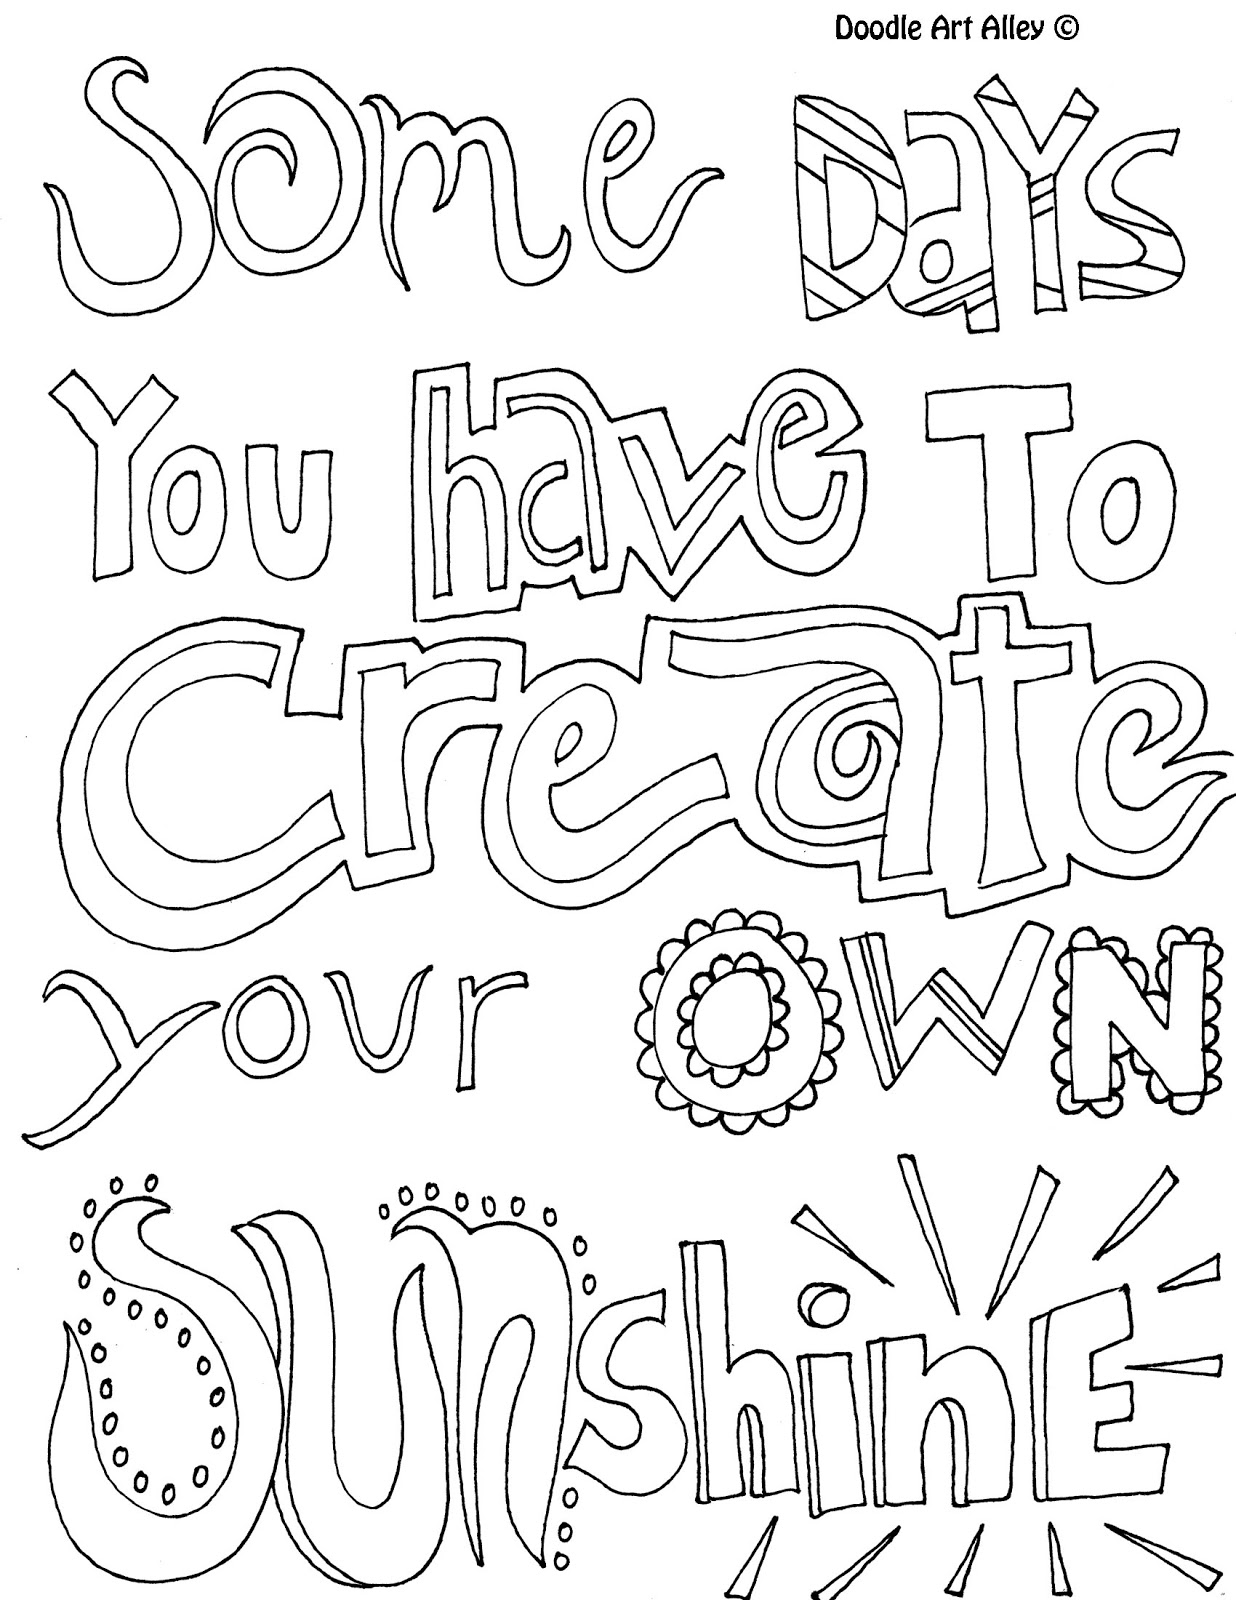 Coloring Pages Quotes : Positive quotes coloring pages quotesgram